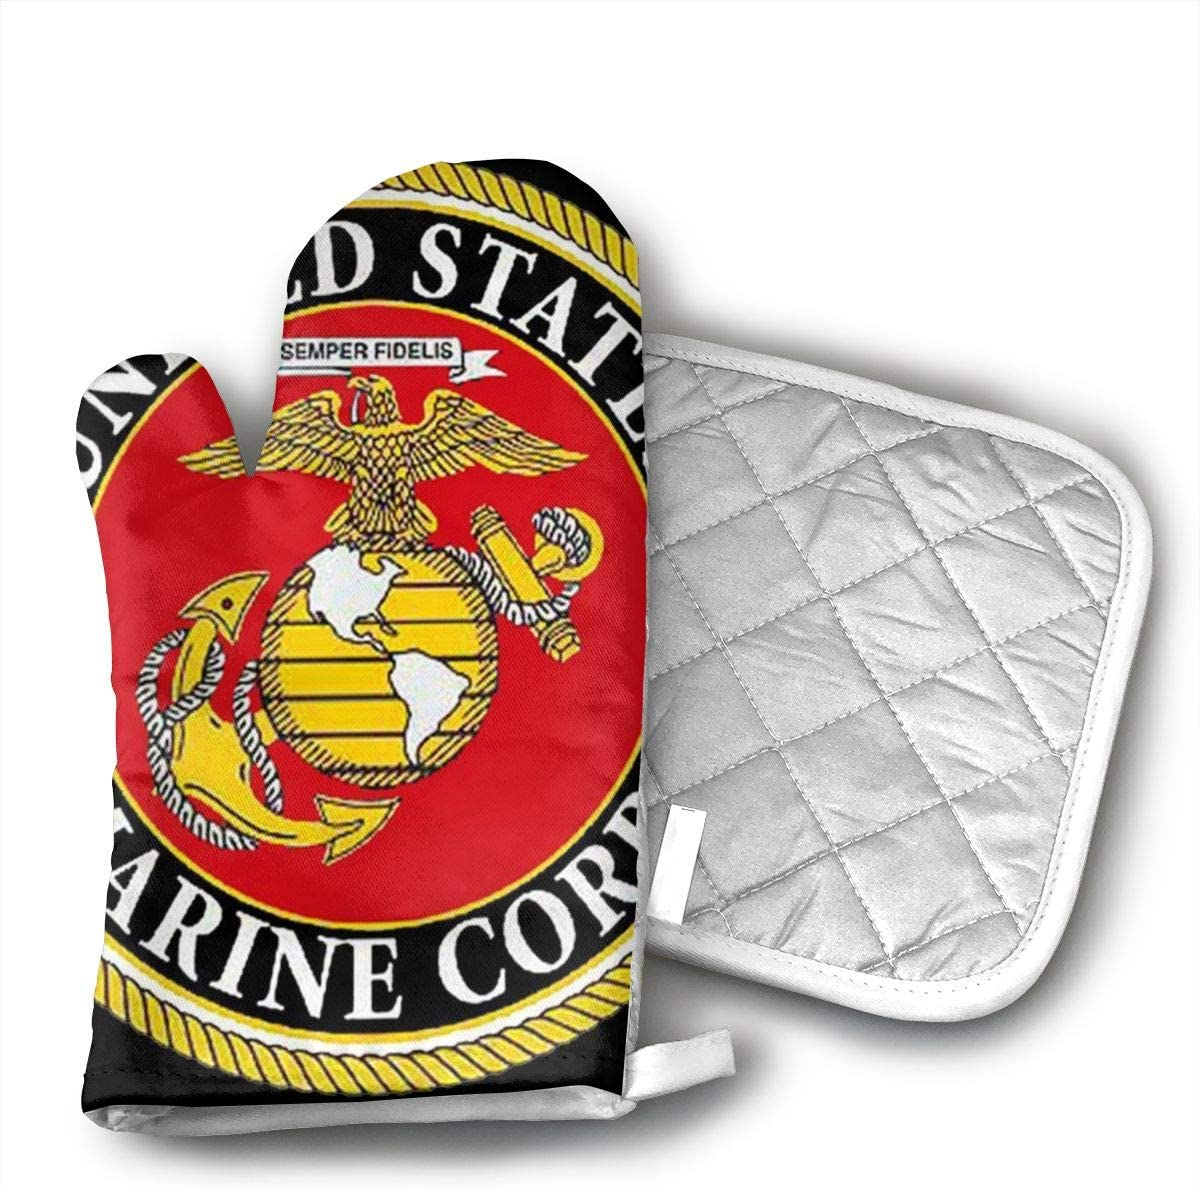 Teuwia United States Marine Corps Oven Mitts and Pot Holders Baking Oven Gloves Hot Pads Set Heat Resistant for Finger Hand Wrist Protection